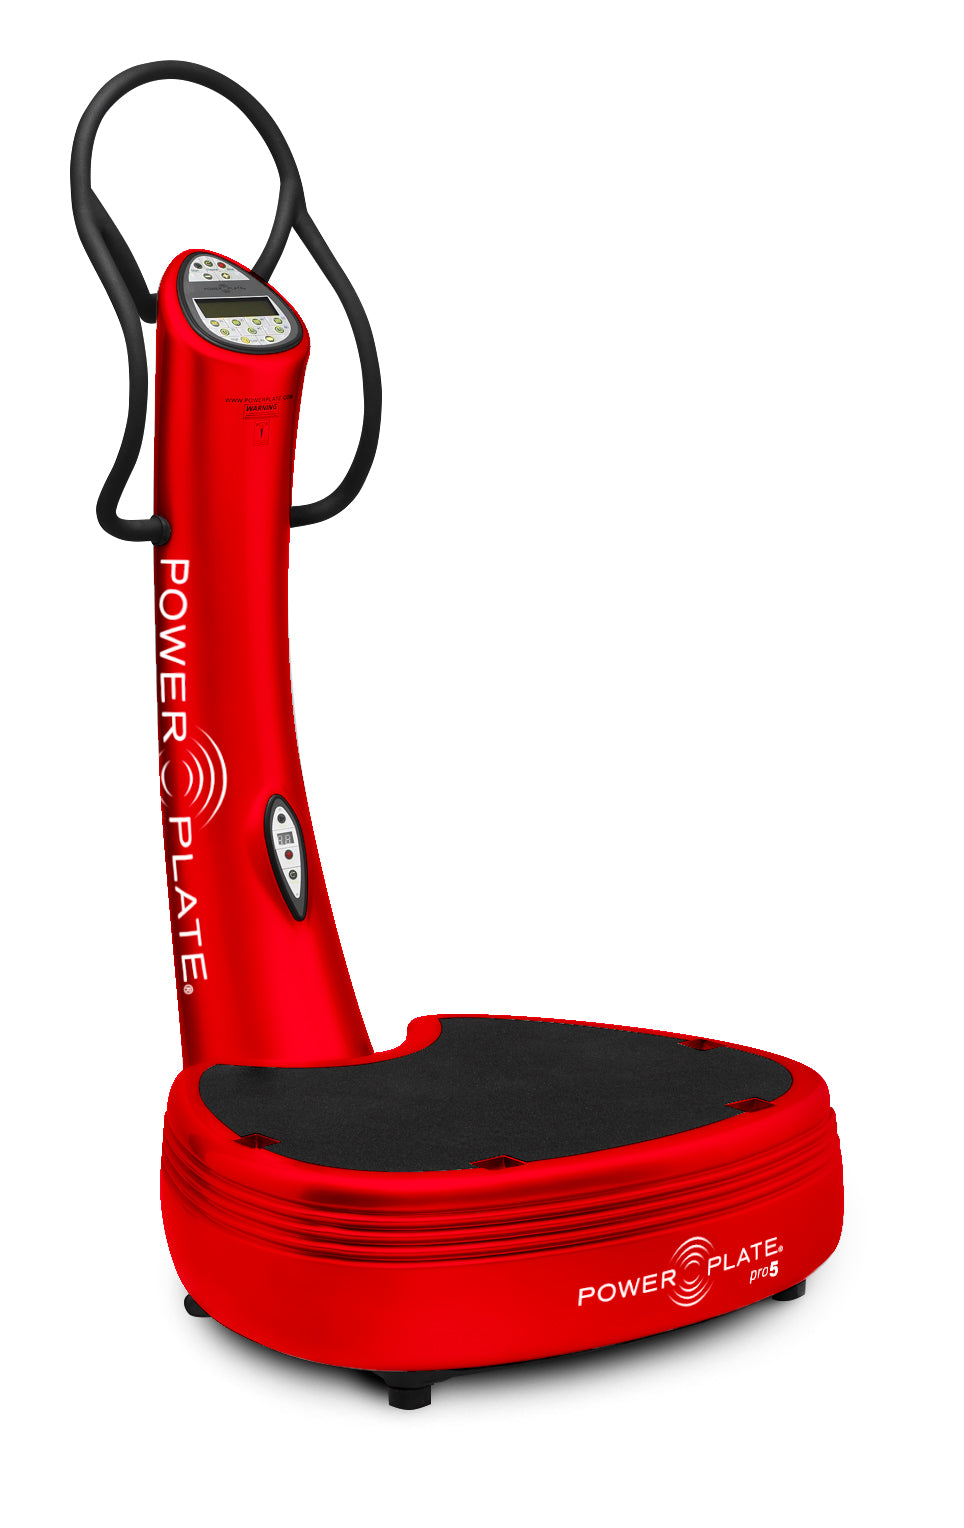 Power Plate Pro7 Vibration Trainer-Red - Indoor Cyclery